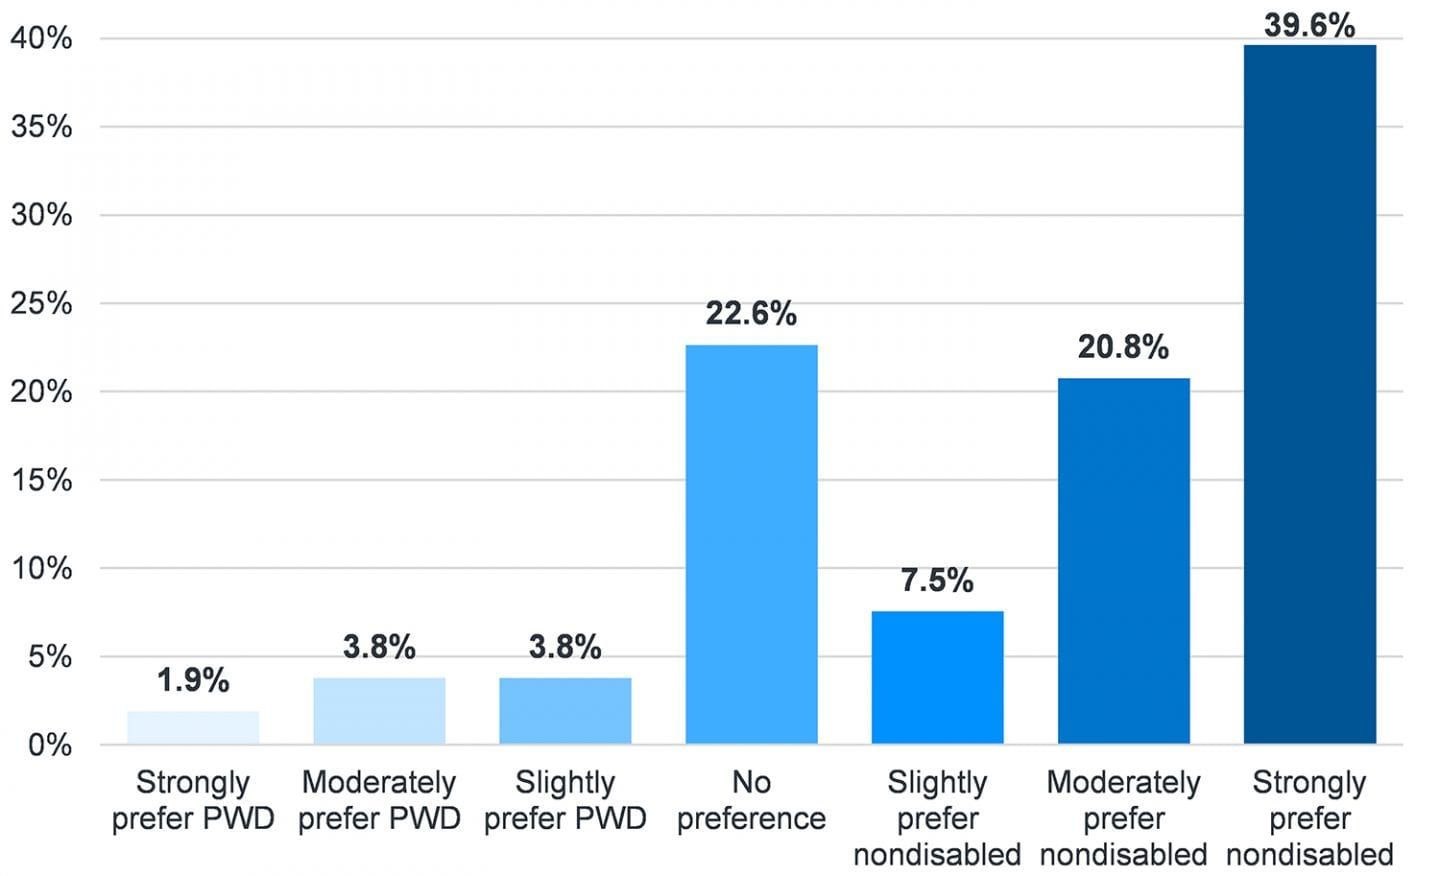 Figure showing the implicit disability attitudes of students at graduation. 68% preferred nondisabled people, 9.5% preferred people with disabilities, and 22.6% had no preference